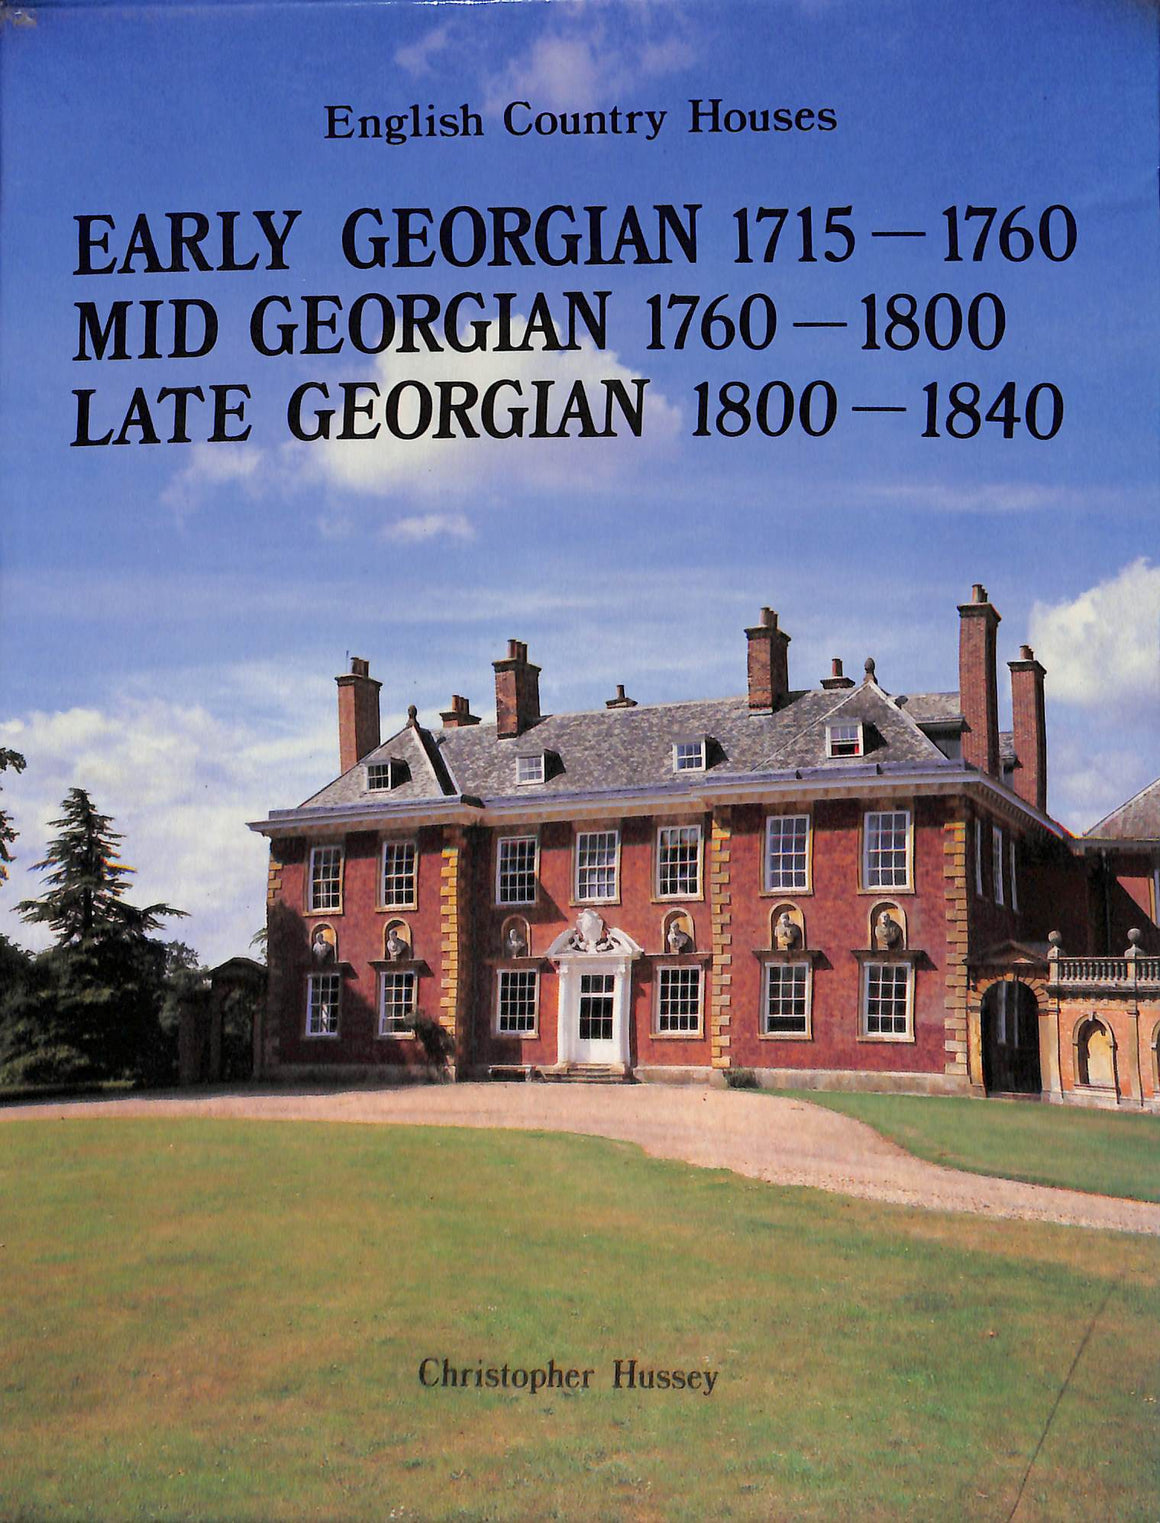 English Country Houses: 3 Vol Early Georgian 1715-1760, Mid Georgian 1760-1800, & Late Georgian 1800-1840